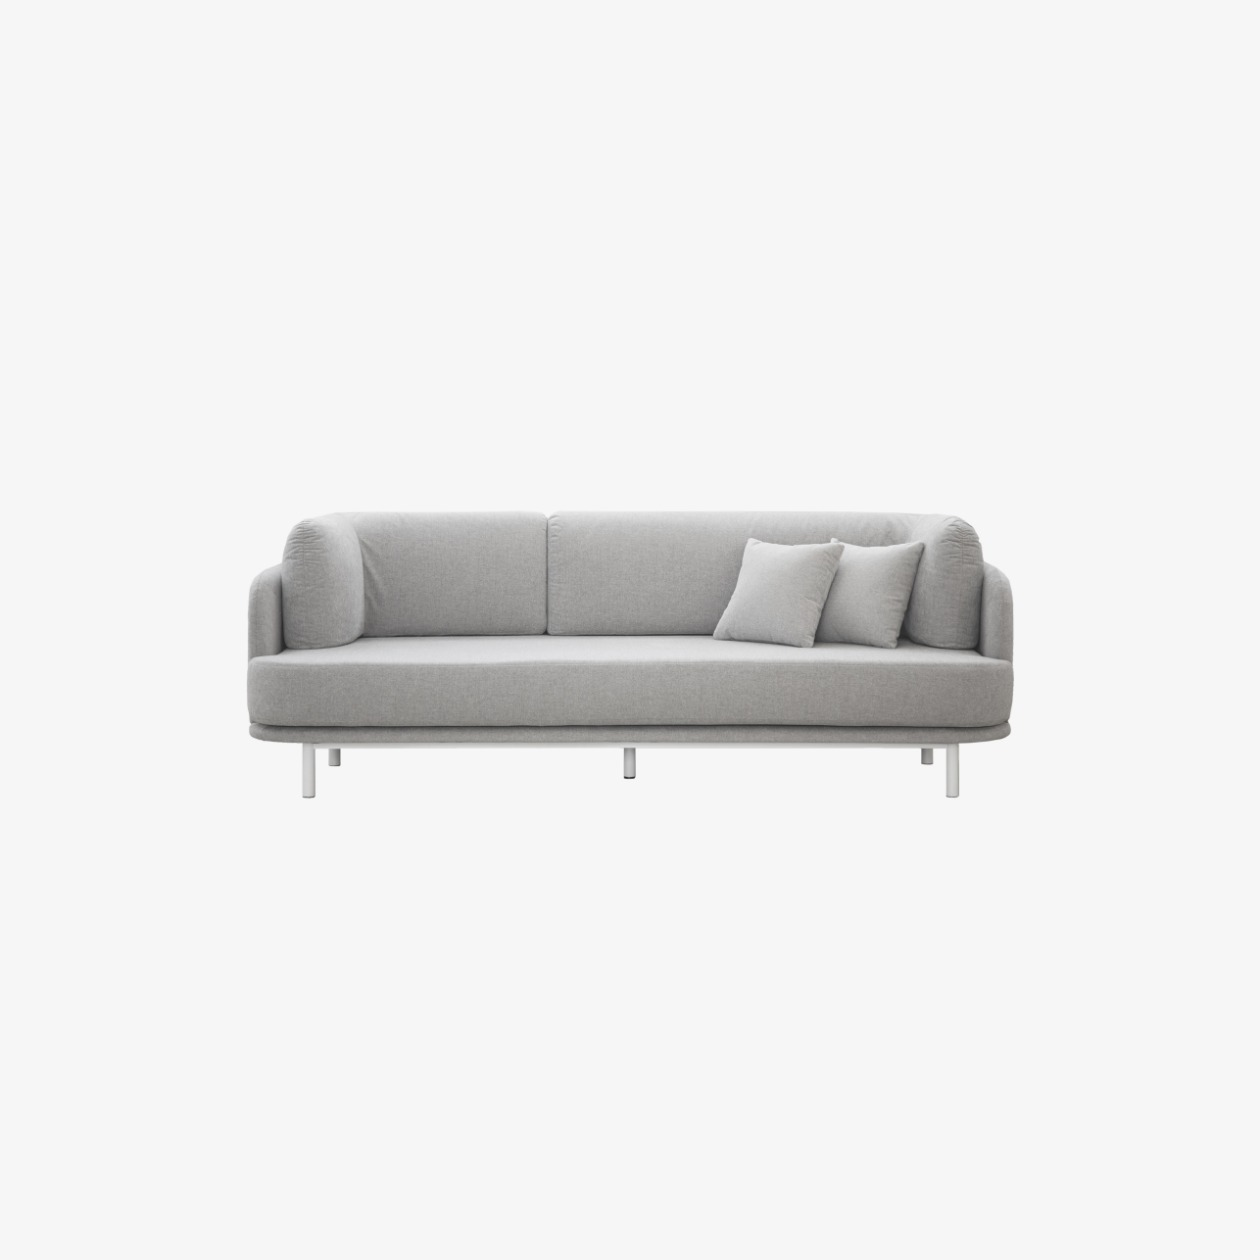 LAYER SOFA 3